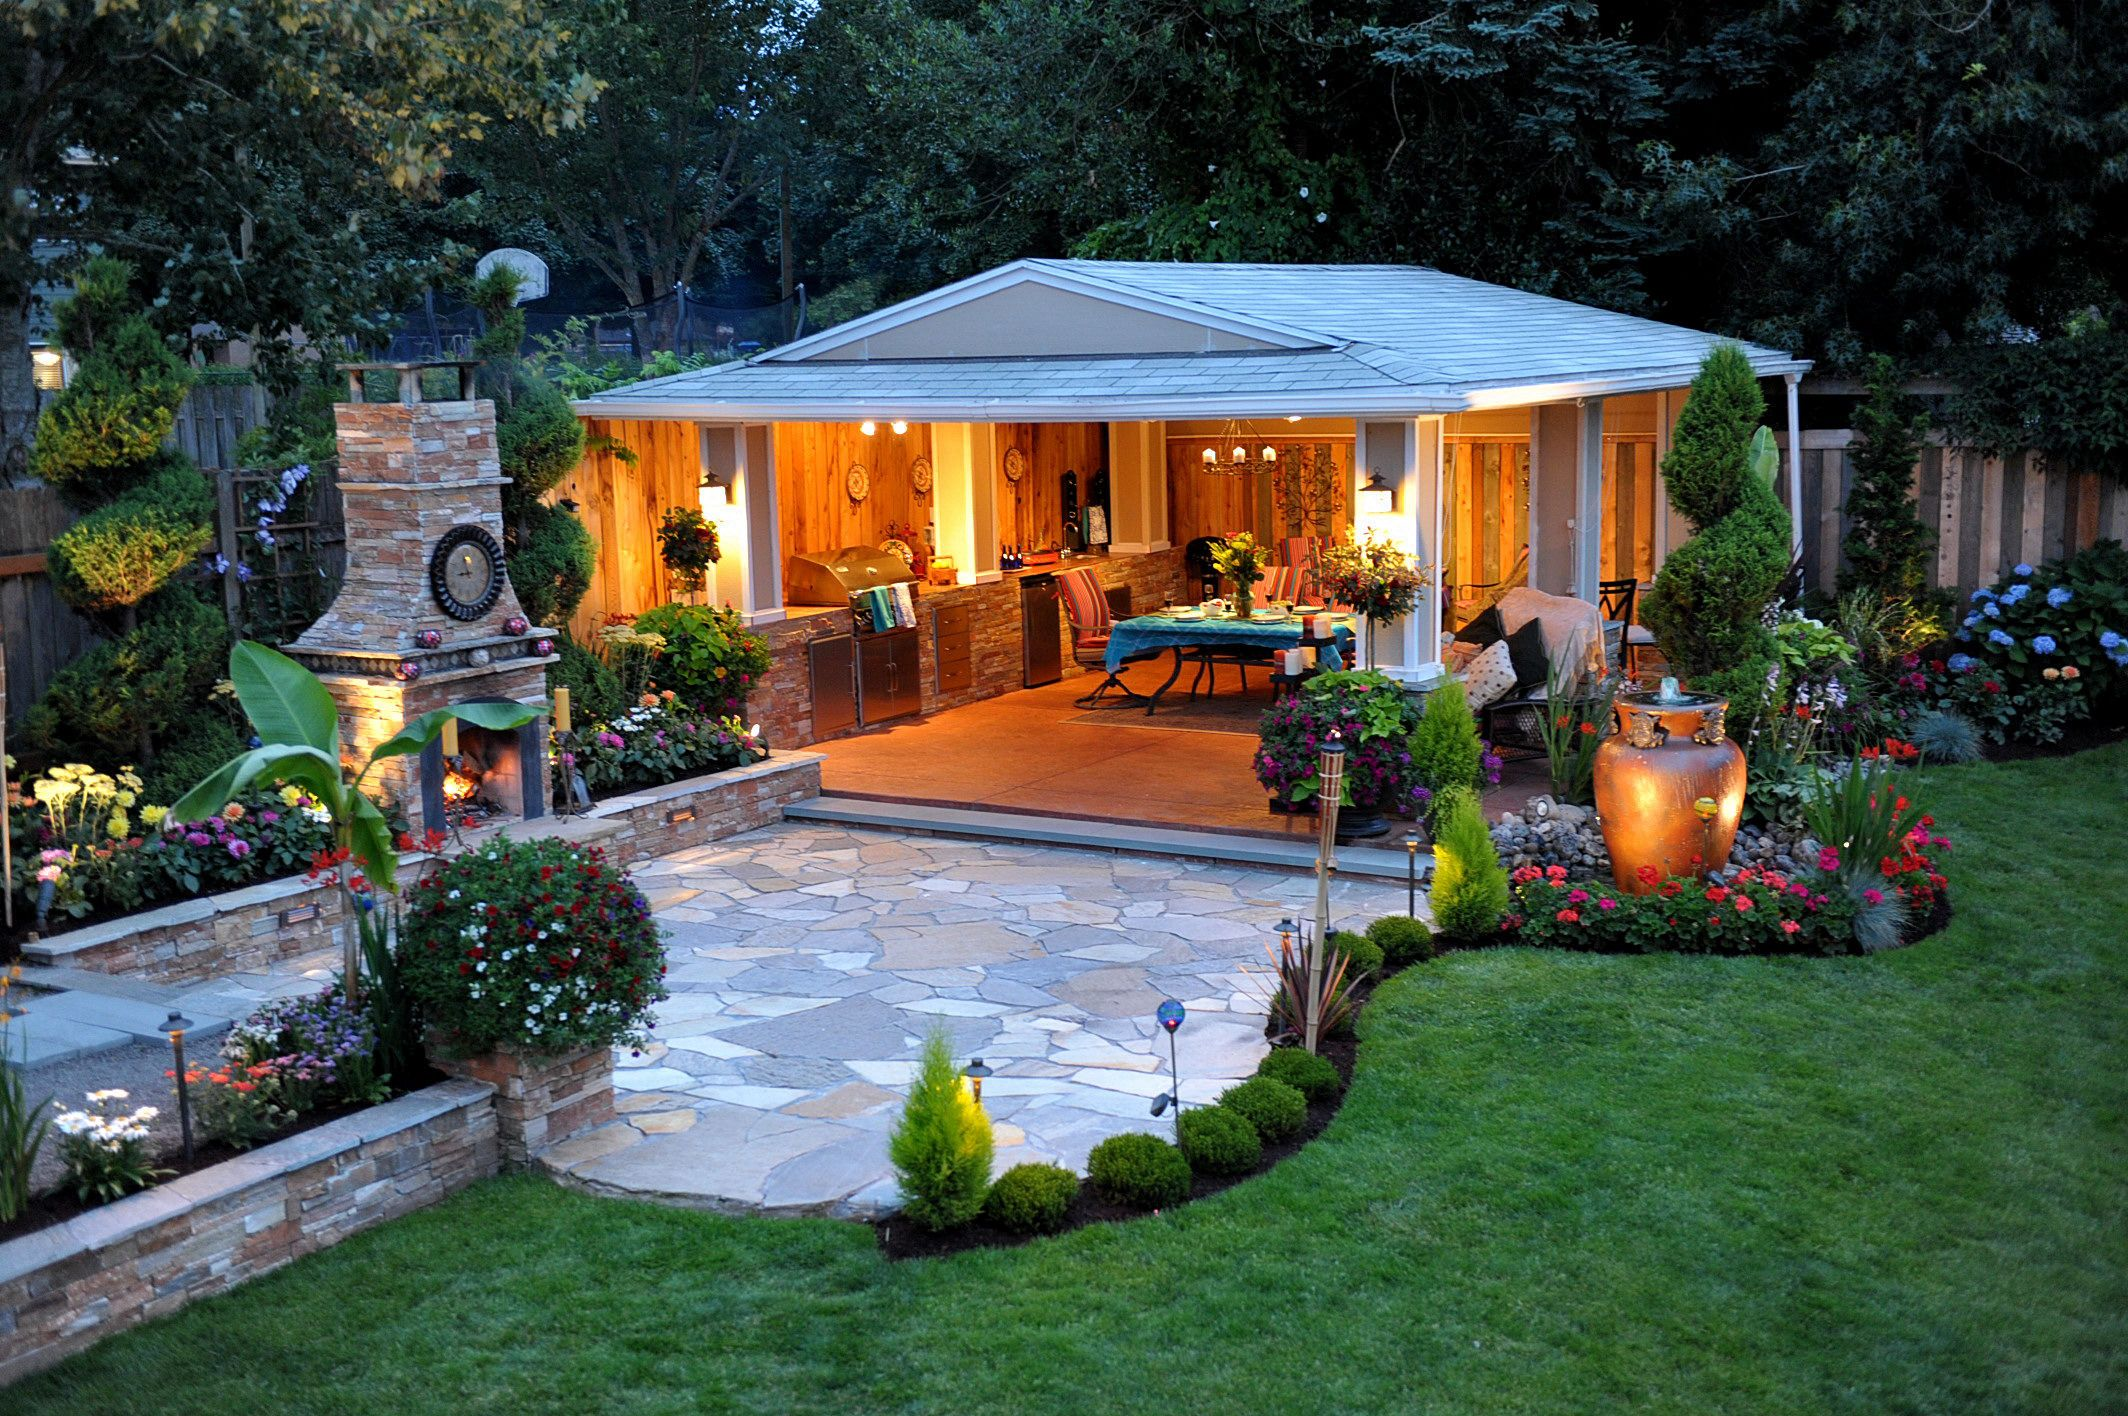 Extraordinary Backyard Oasis Ideas With Pool To Inspire Your Home Furniture 150x150 Backyard Outdoor Garden Rooms Outdoor Backyard Backyard Landscaping Designs